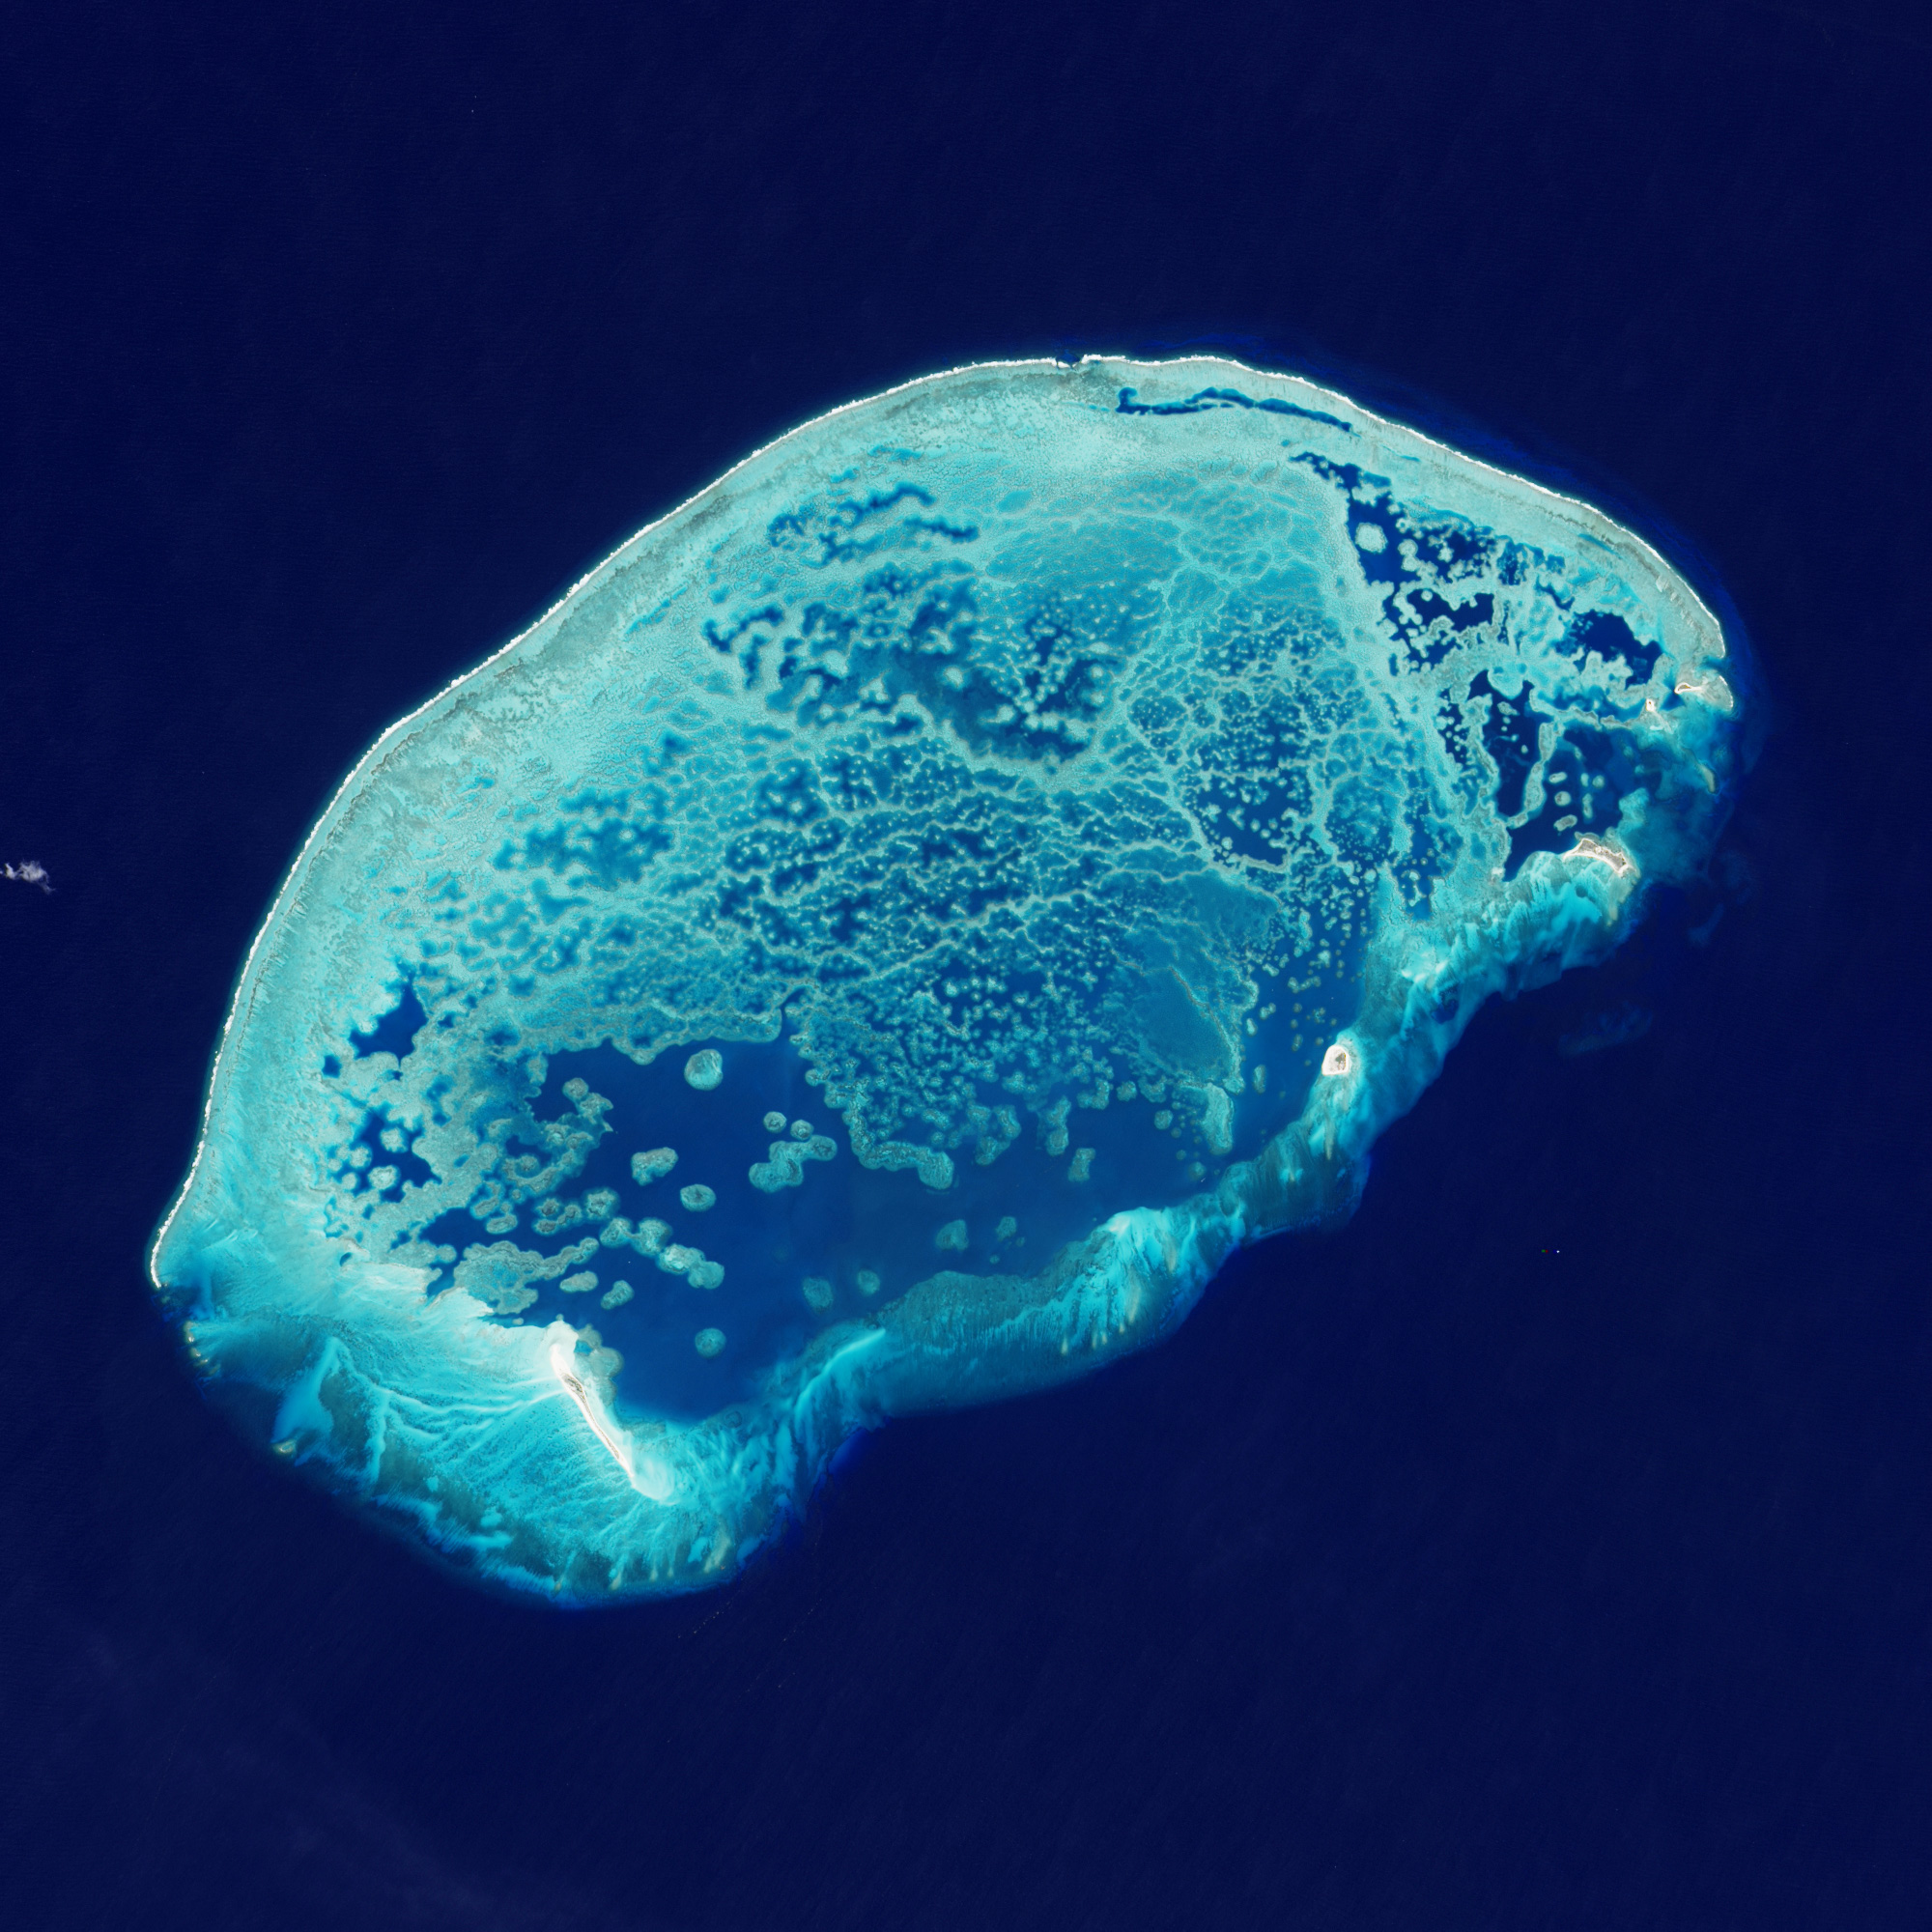 The Arrecife Alacranes, or Scorpion Reef, is the largest coral formation in the Gulf of Mexico.